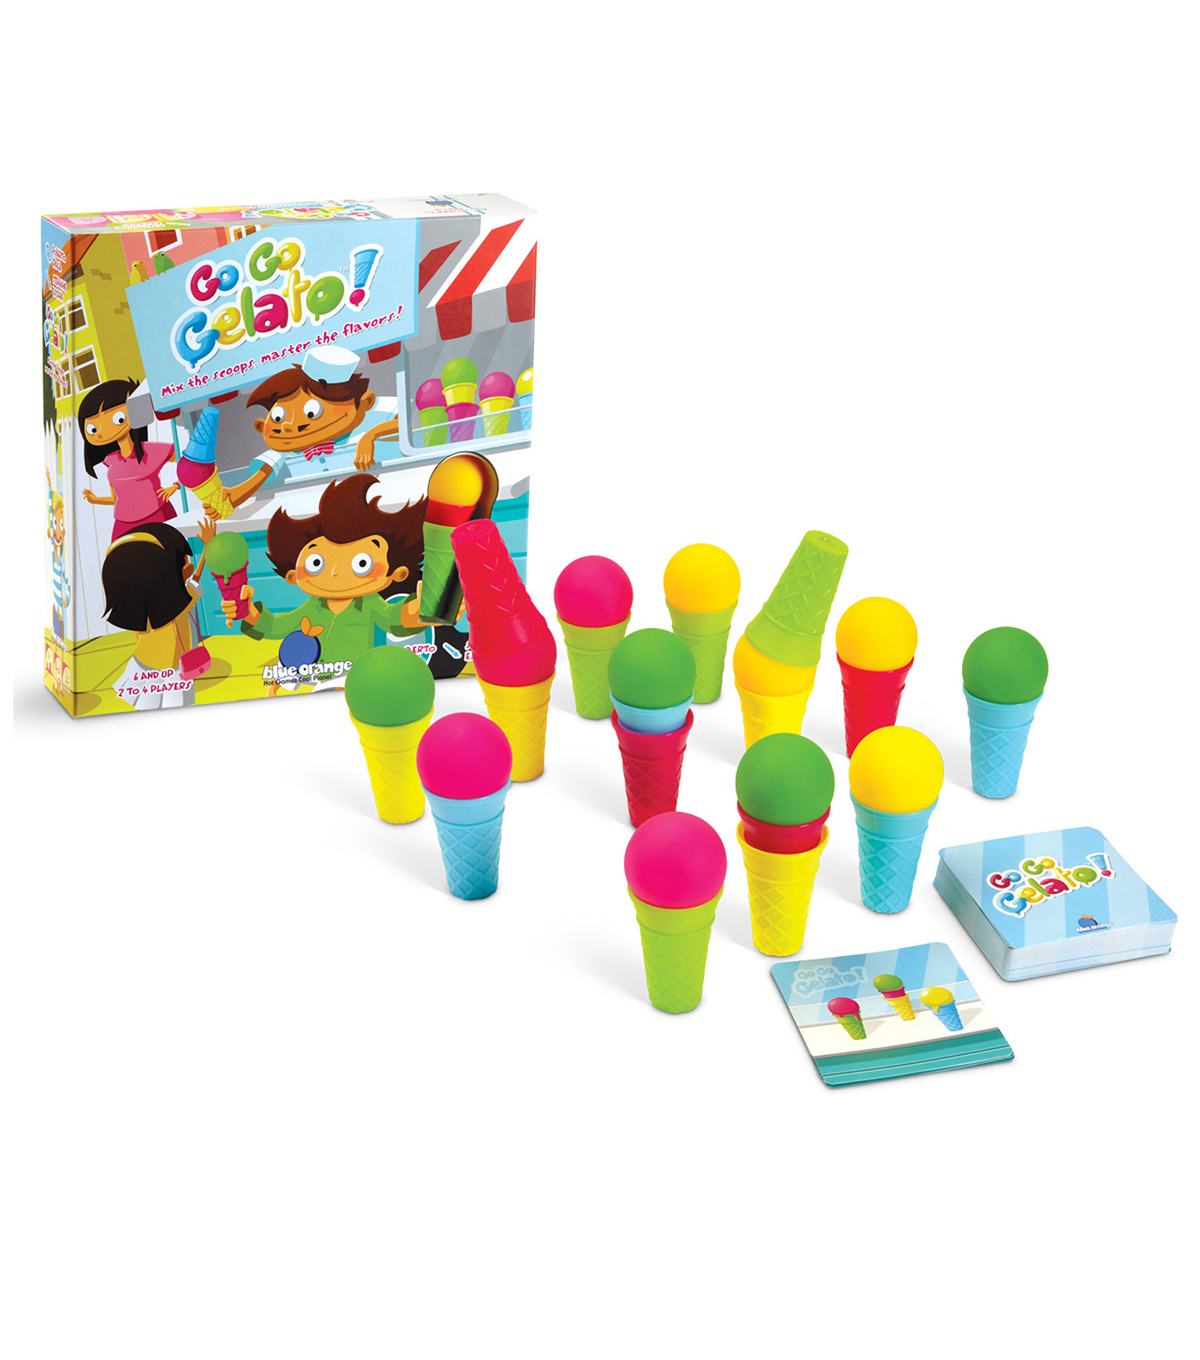 Blue Orange Games Go Go Gelato! Game, Ages 6 and Up, 2-4 Players